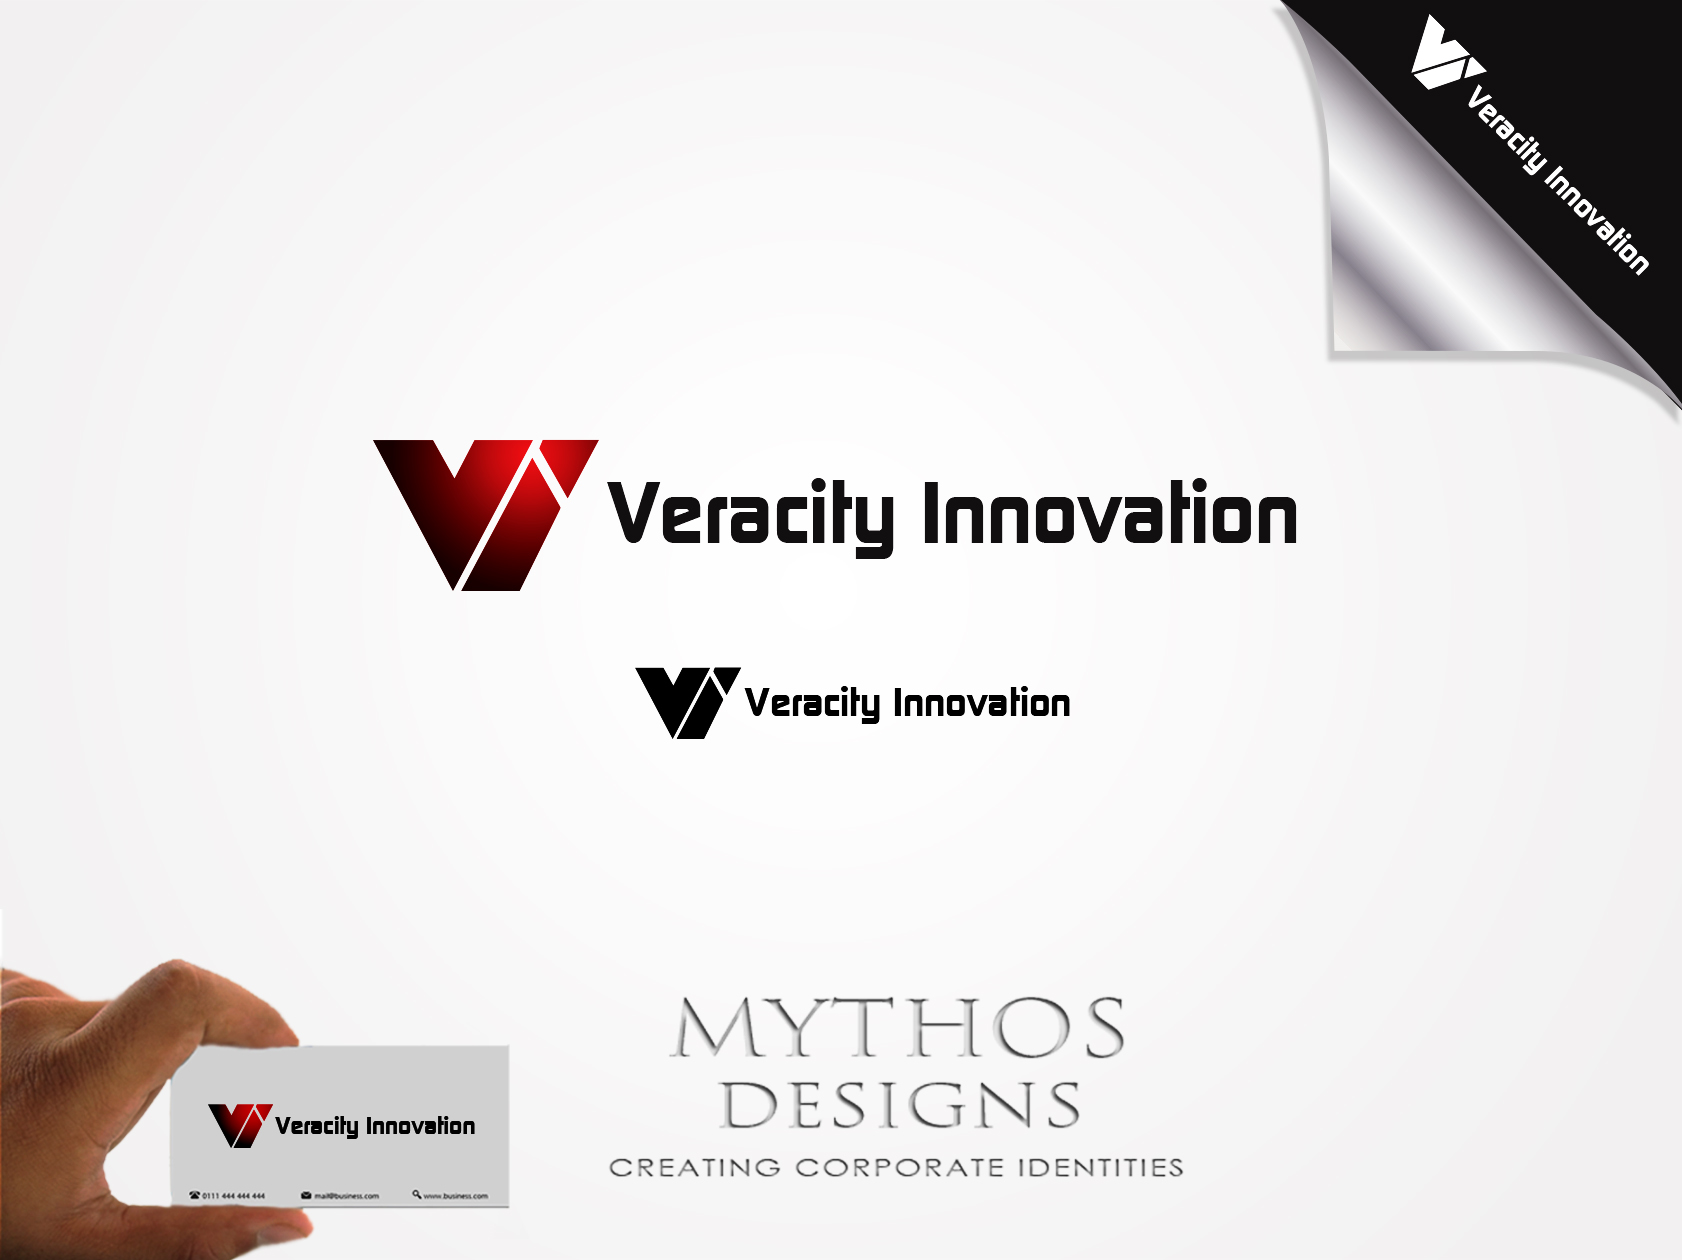 Logo Design by Mythos Designs - Entry No. 253 in the Logo Design Contest Creative Logo Design for Veracity Innovation, LLC.